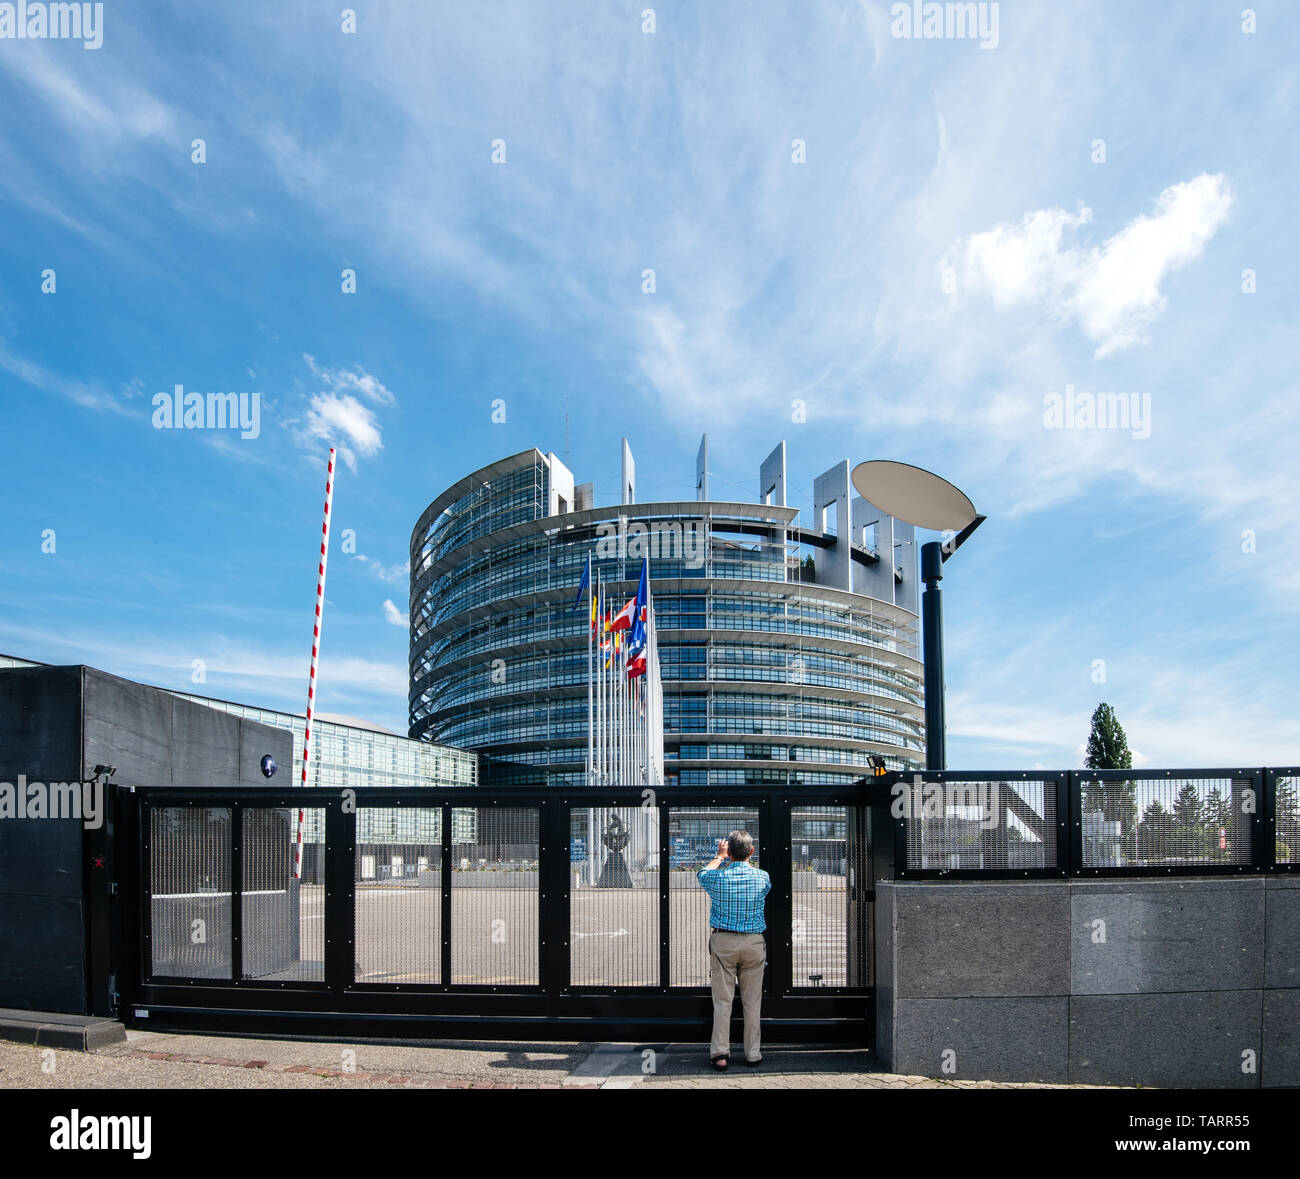 Strasbourg, France - May 26, 2019: Seniopr man taking photograph through the closed gate of the European Parliament headquarter with all European Union flags waving - clear blue sky in background - Stock Image